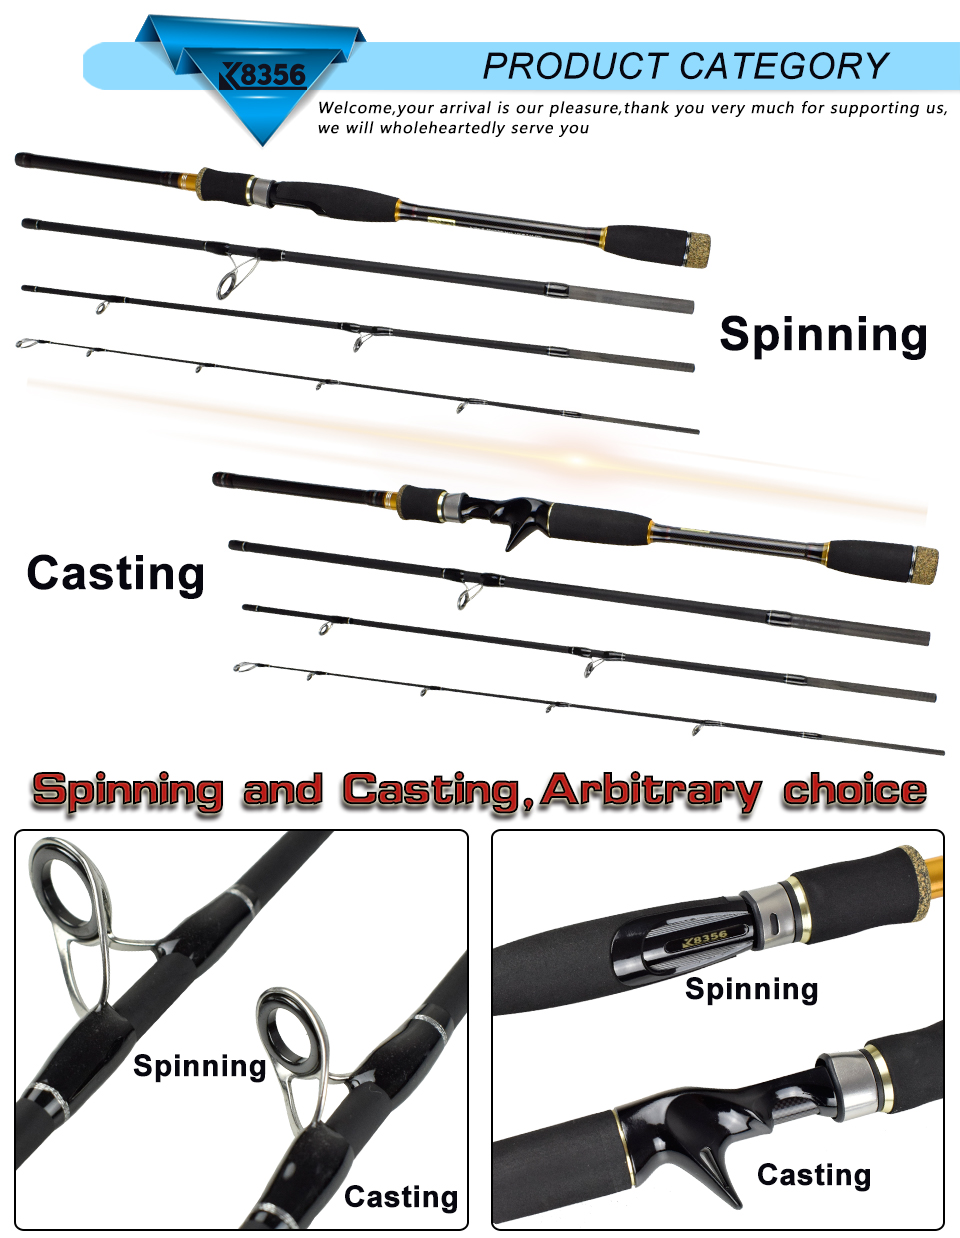 K8356 99%Carbon Lure Rod 4 Section CastingSpinning Fishing Rod 1.8 2.1 2.4 2.7 3.0m Travel Stitching Saltwater Pole Fish Tools(10)